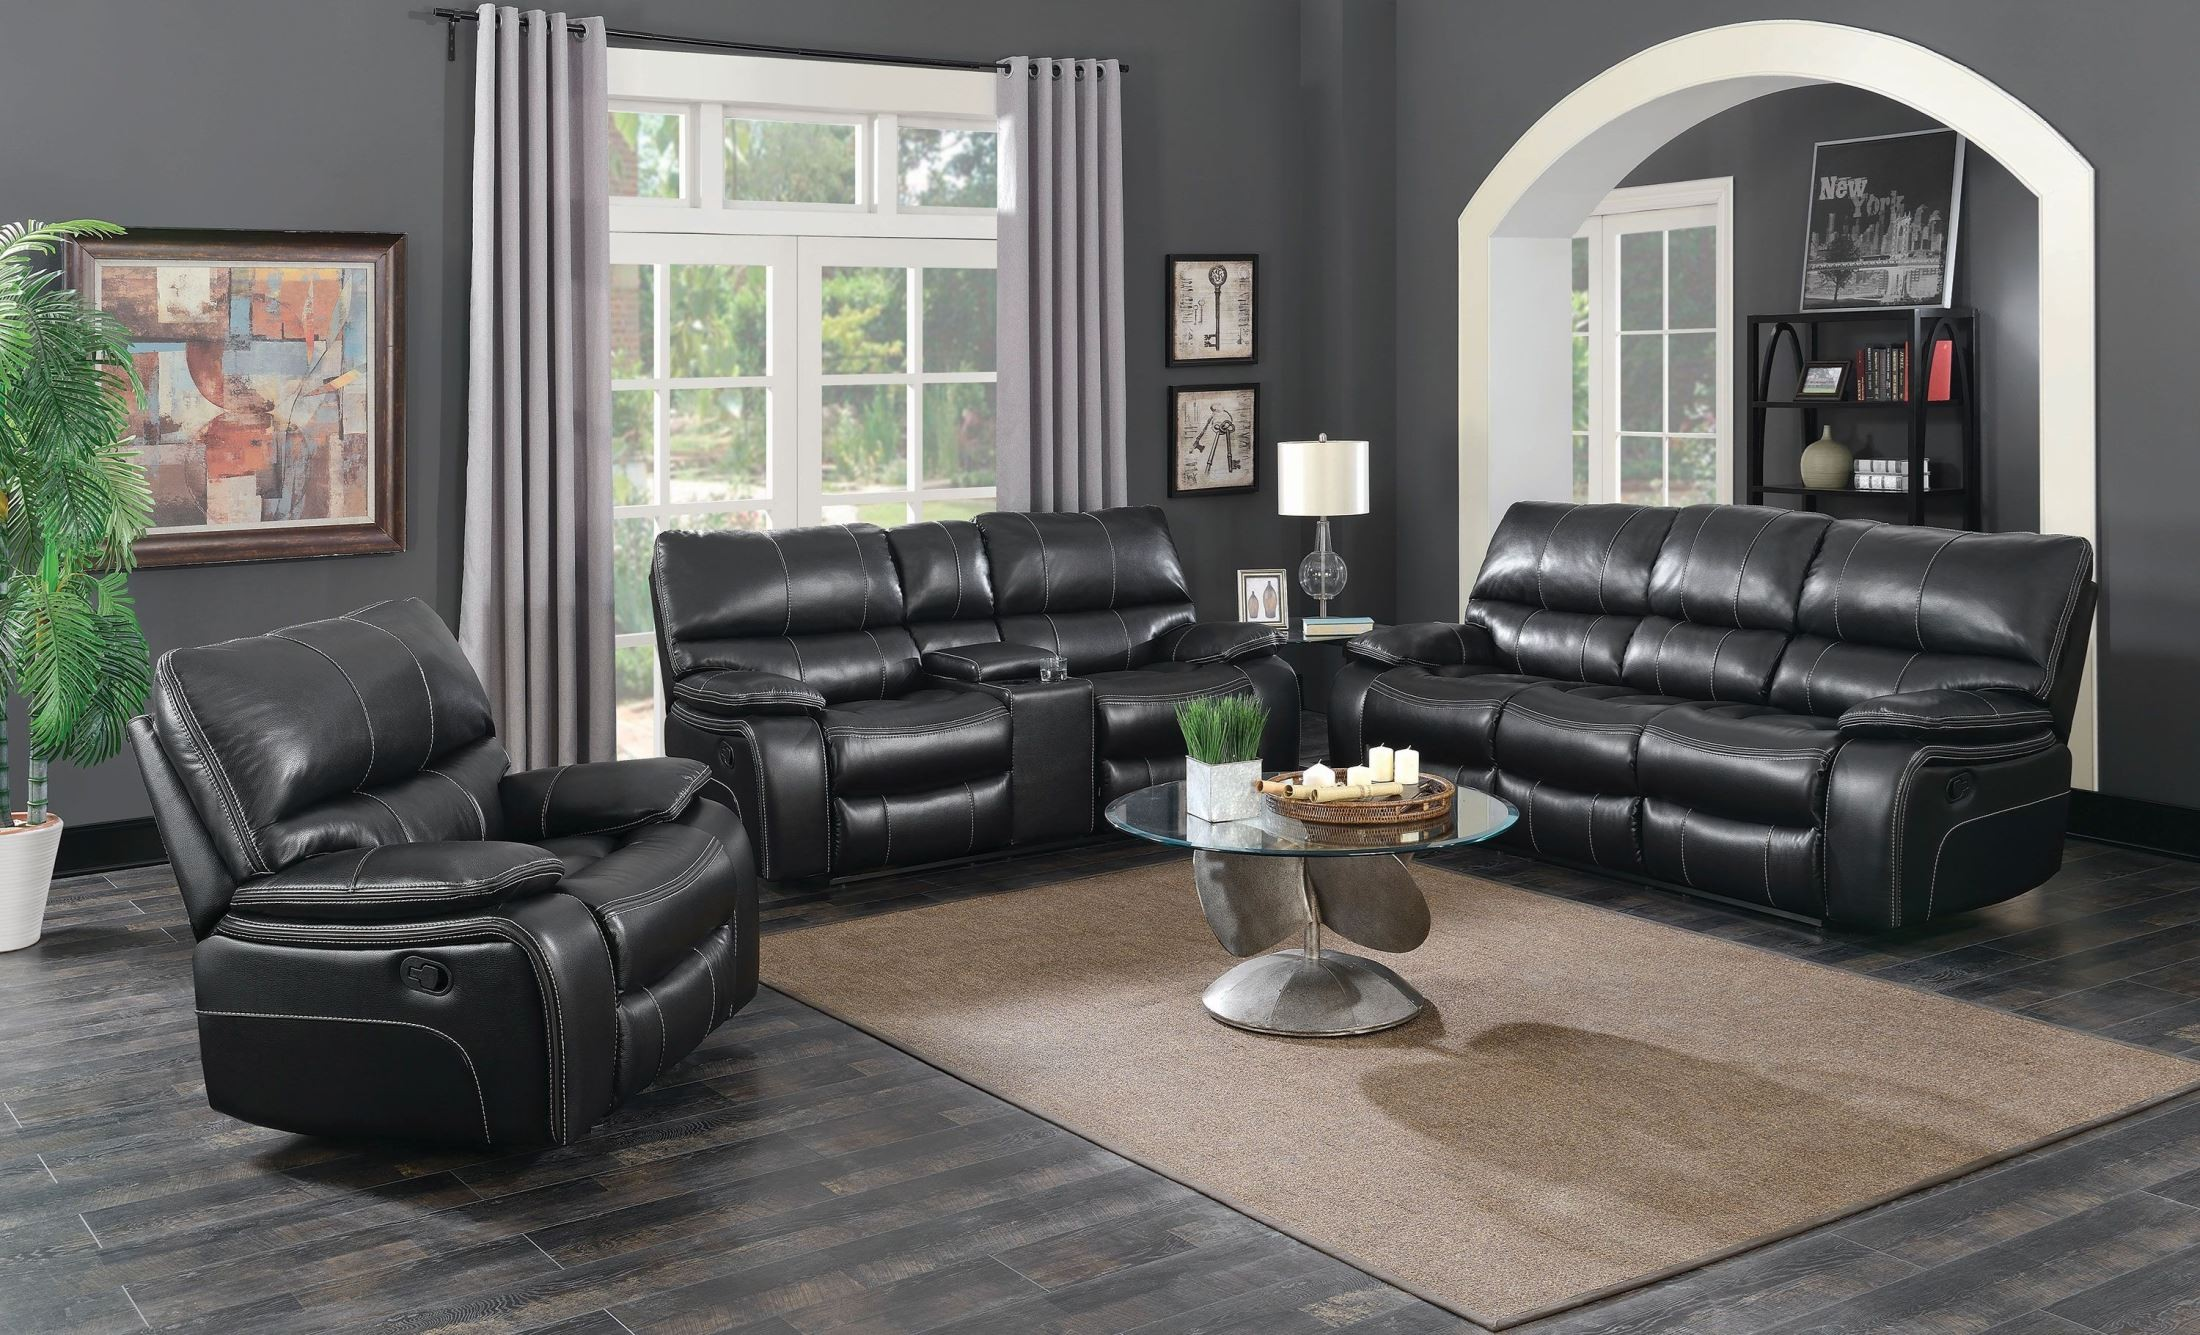 Willemse black reclining living room set 601934 coaster for Black living room furniture